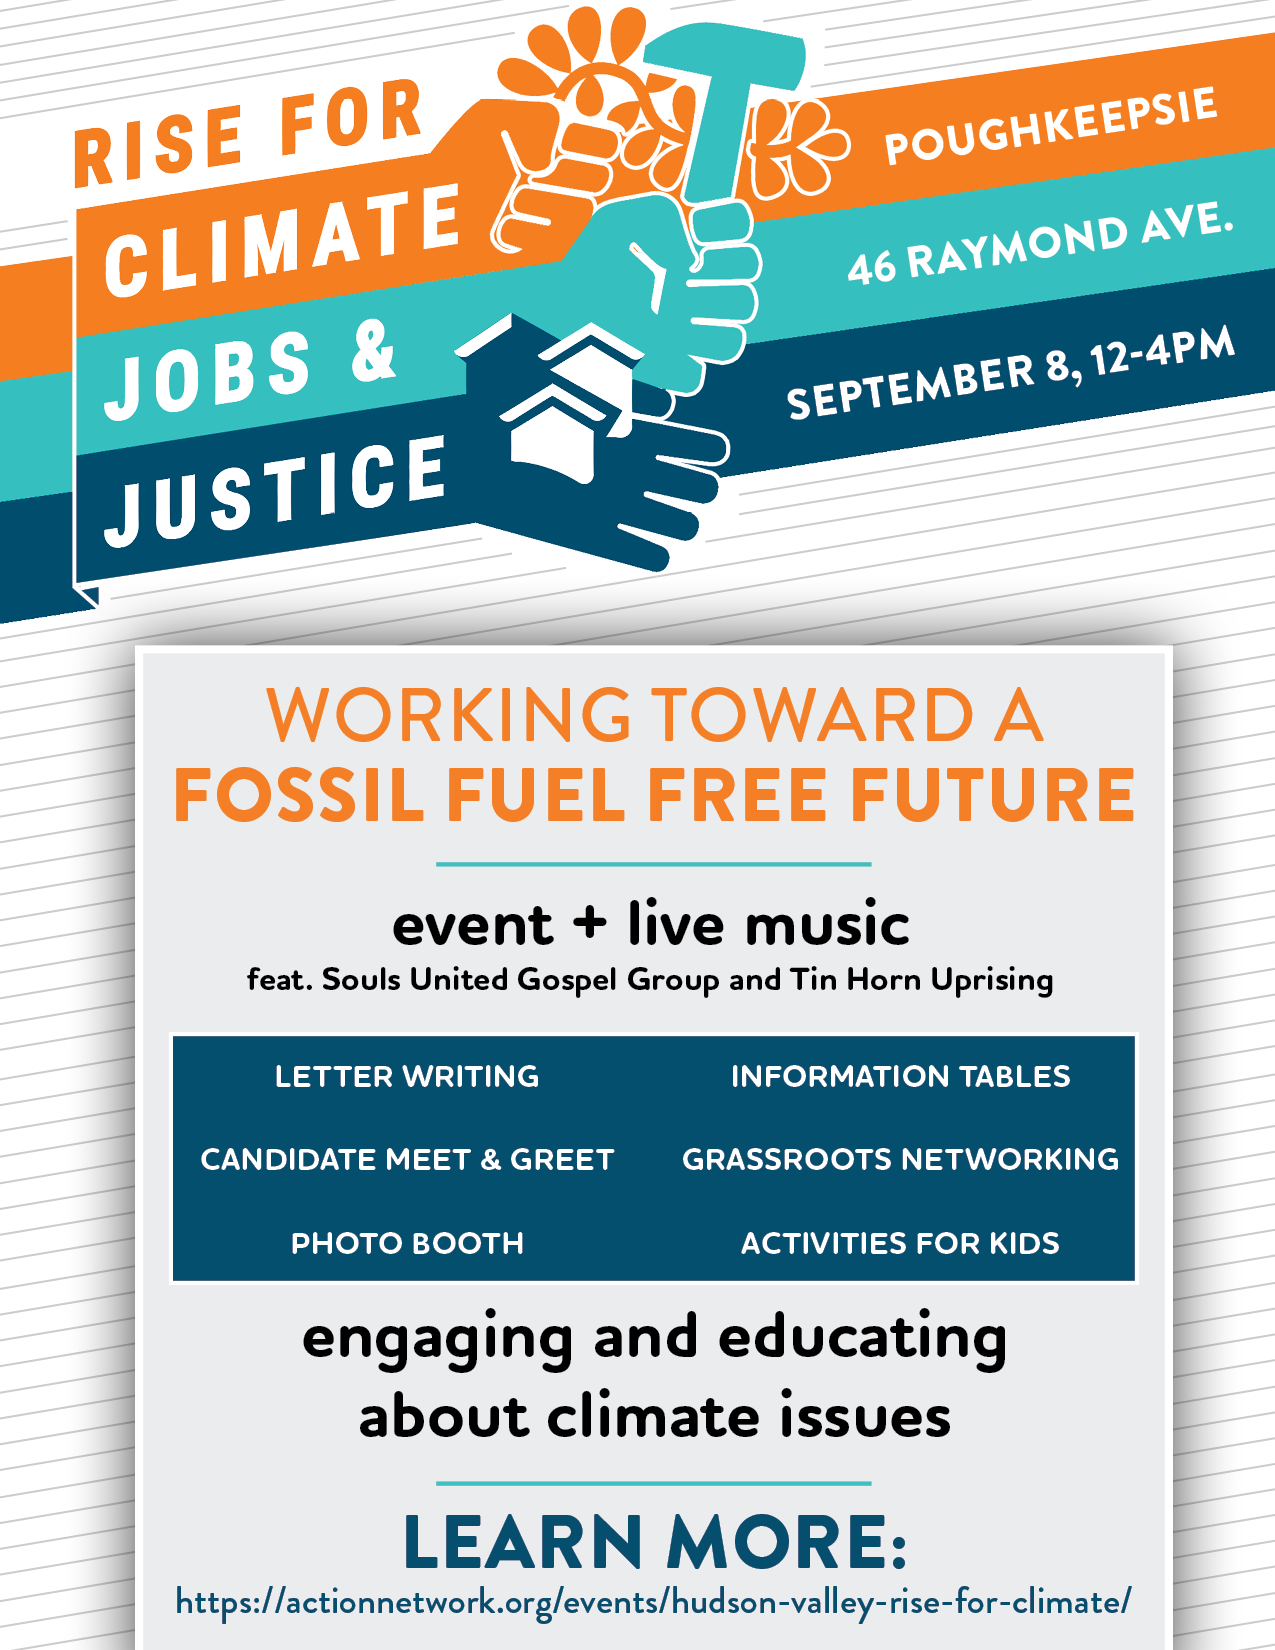 Hudson Valley RISE for Climate event on Sept  8th, 2018